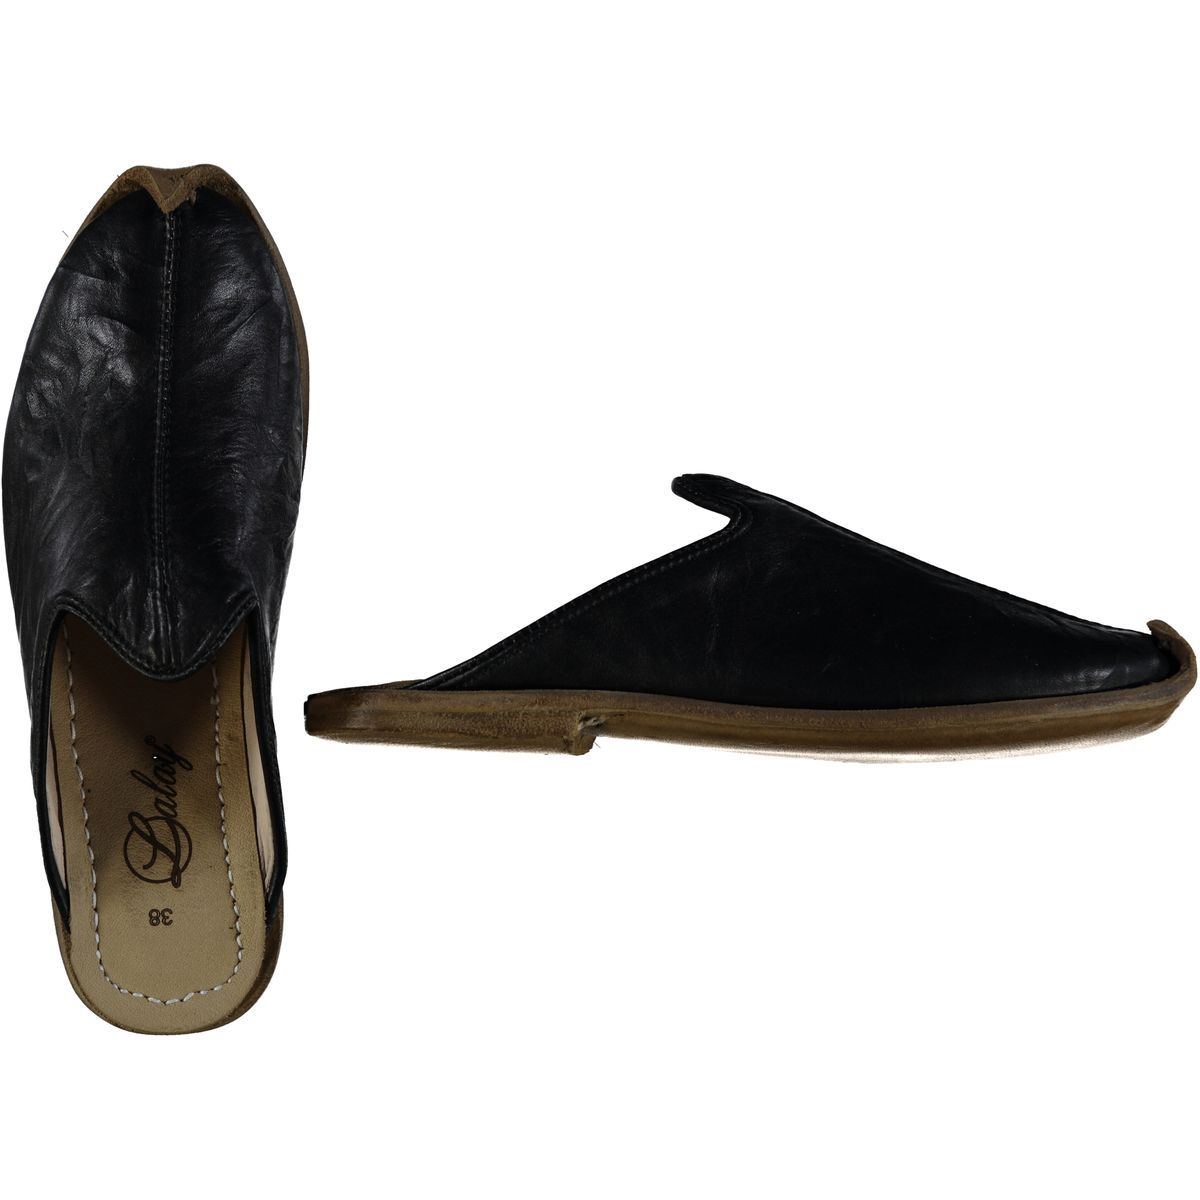 Slipper - Babouche - Leather / Handmade - Black